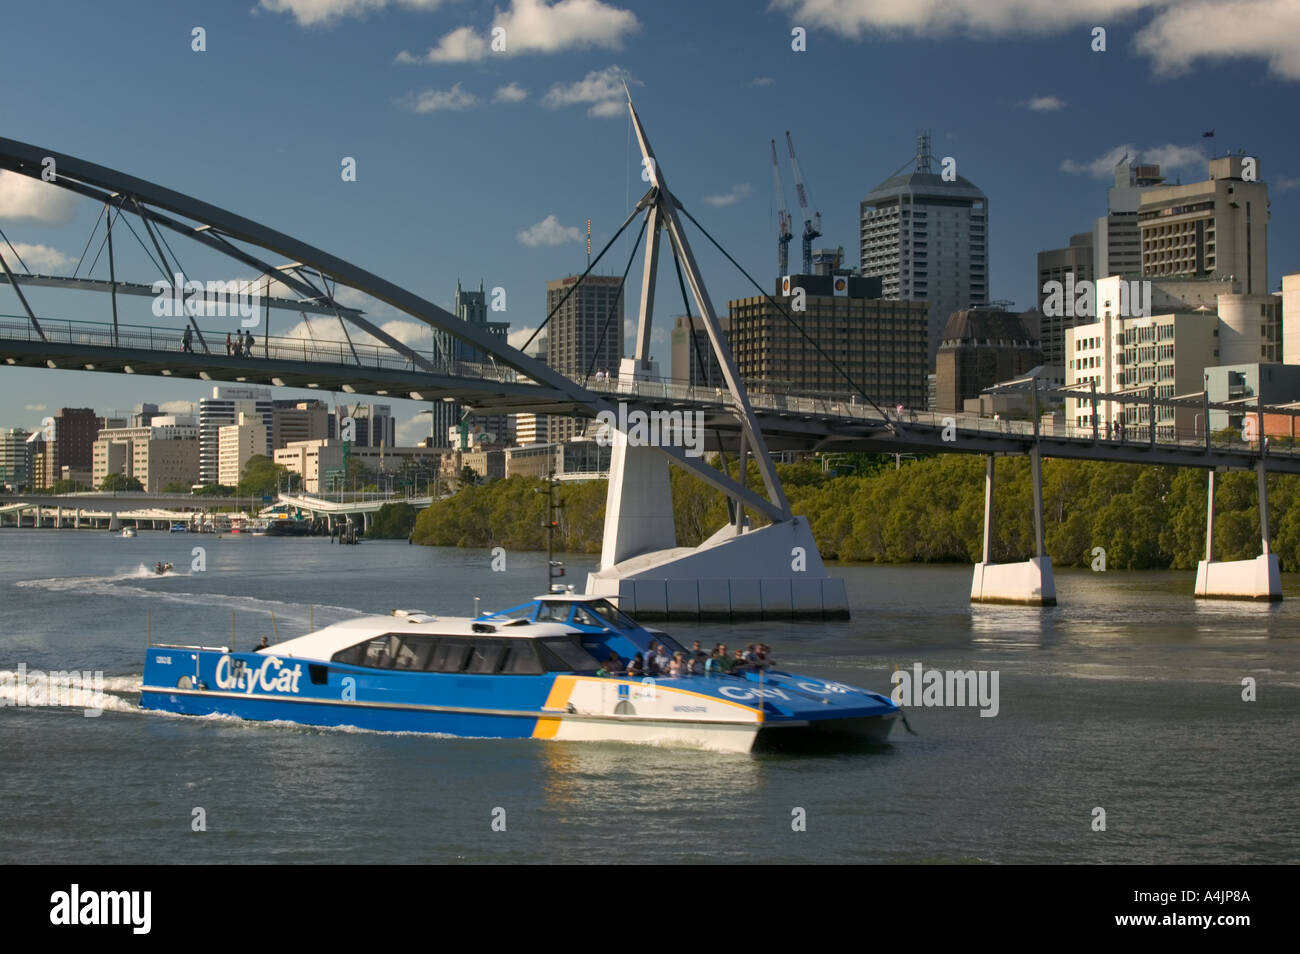 A CityCat catamaran on the Brisbane River with the Goodwill Bridge behind. - Stock Image